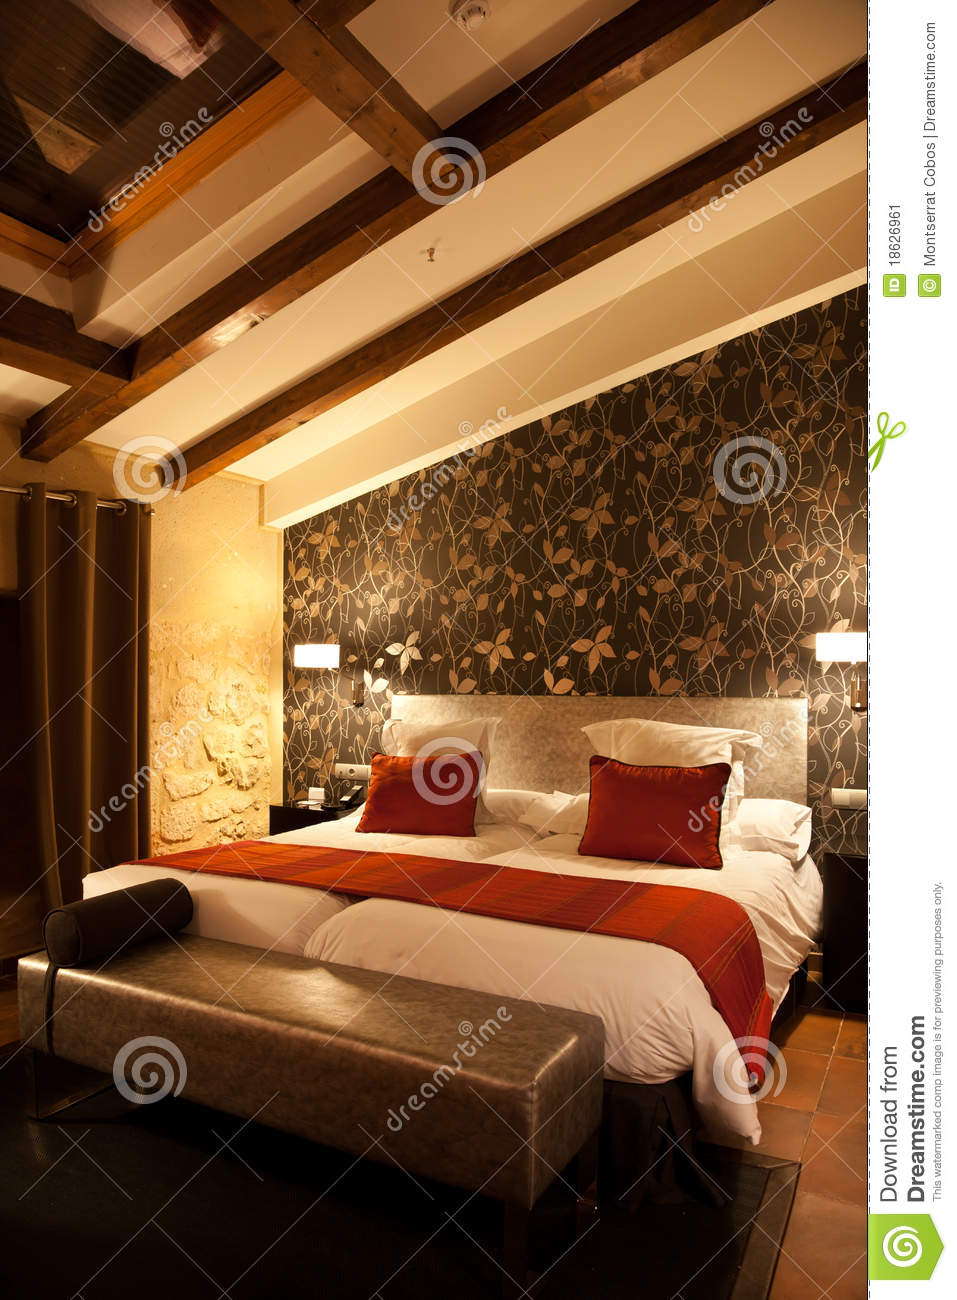 Modern mansard bedroom stock image Image of attic mansard  18626961